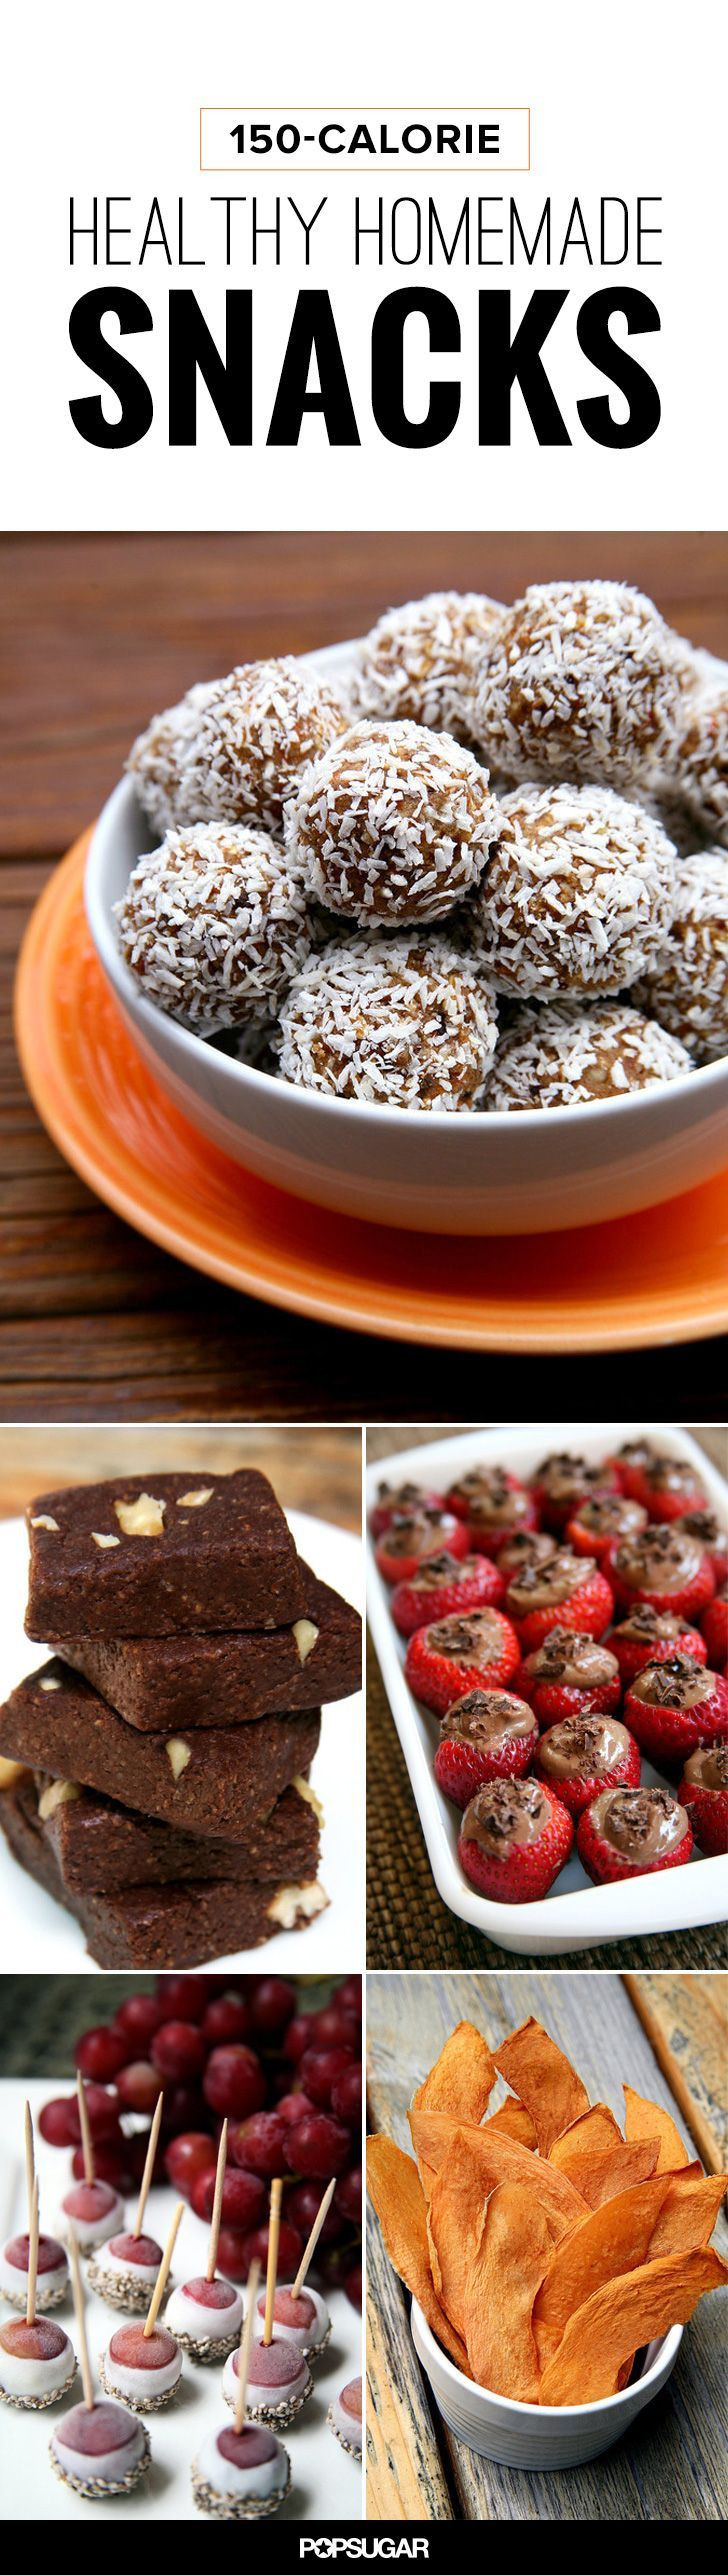 Midnight Healthy Snacks  10 best Midnight Snacks images on Pinterest